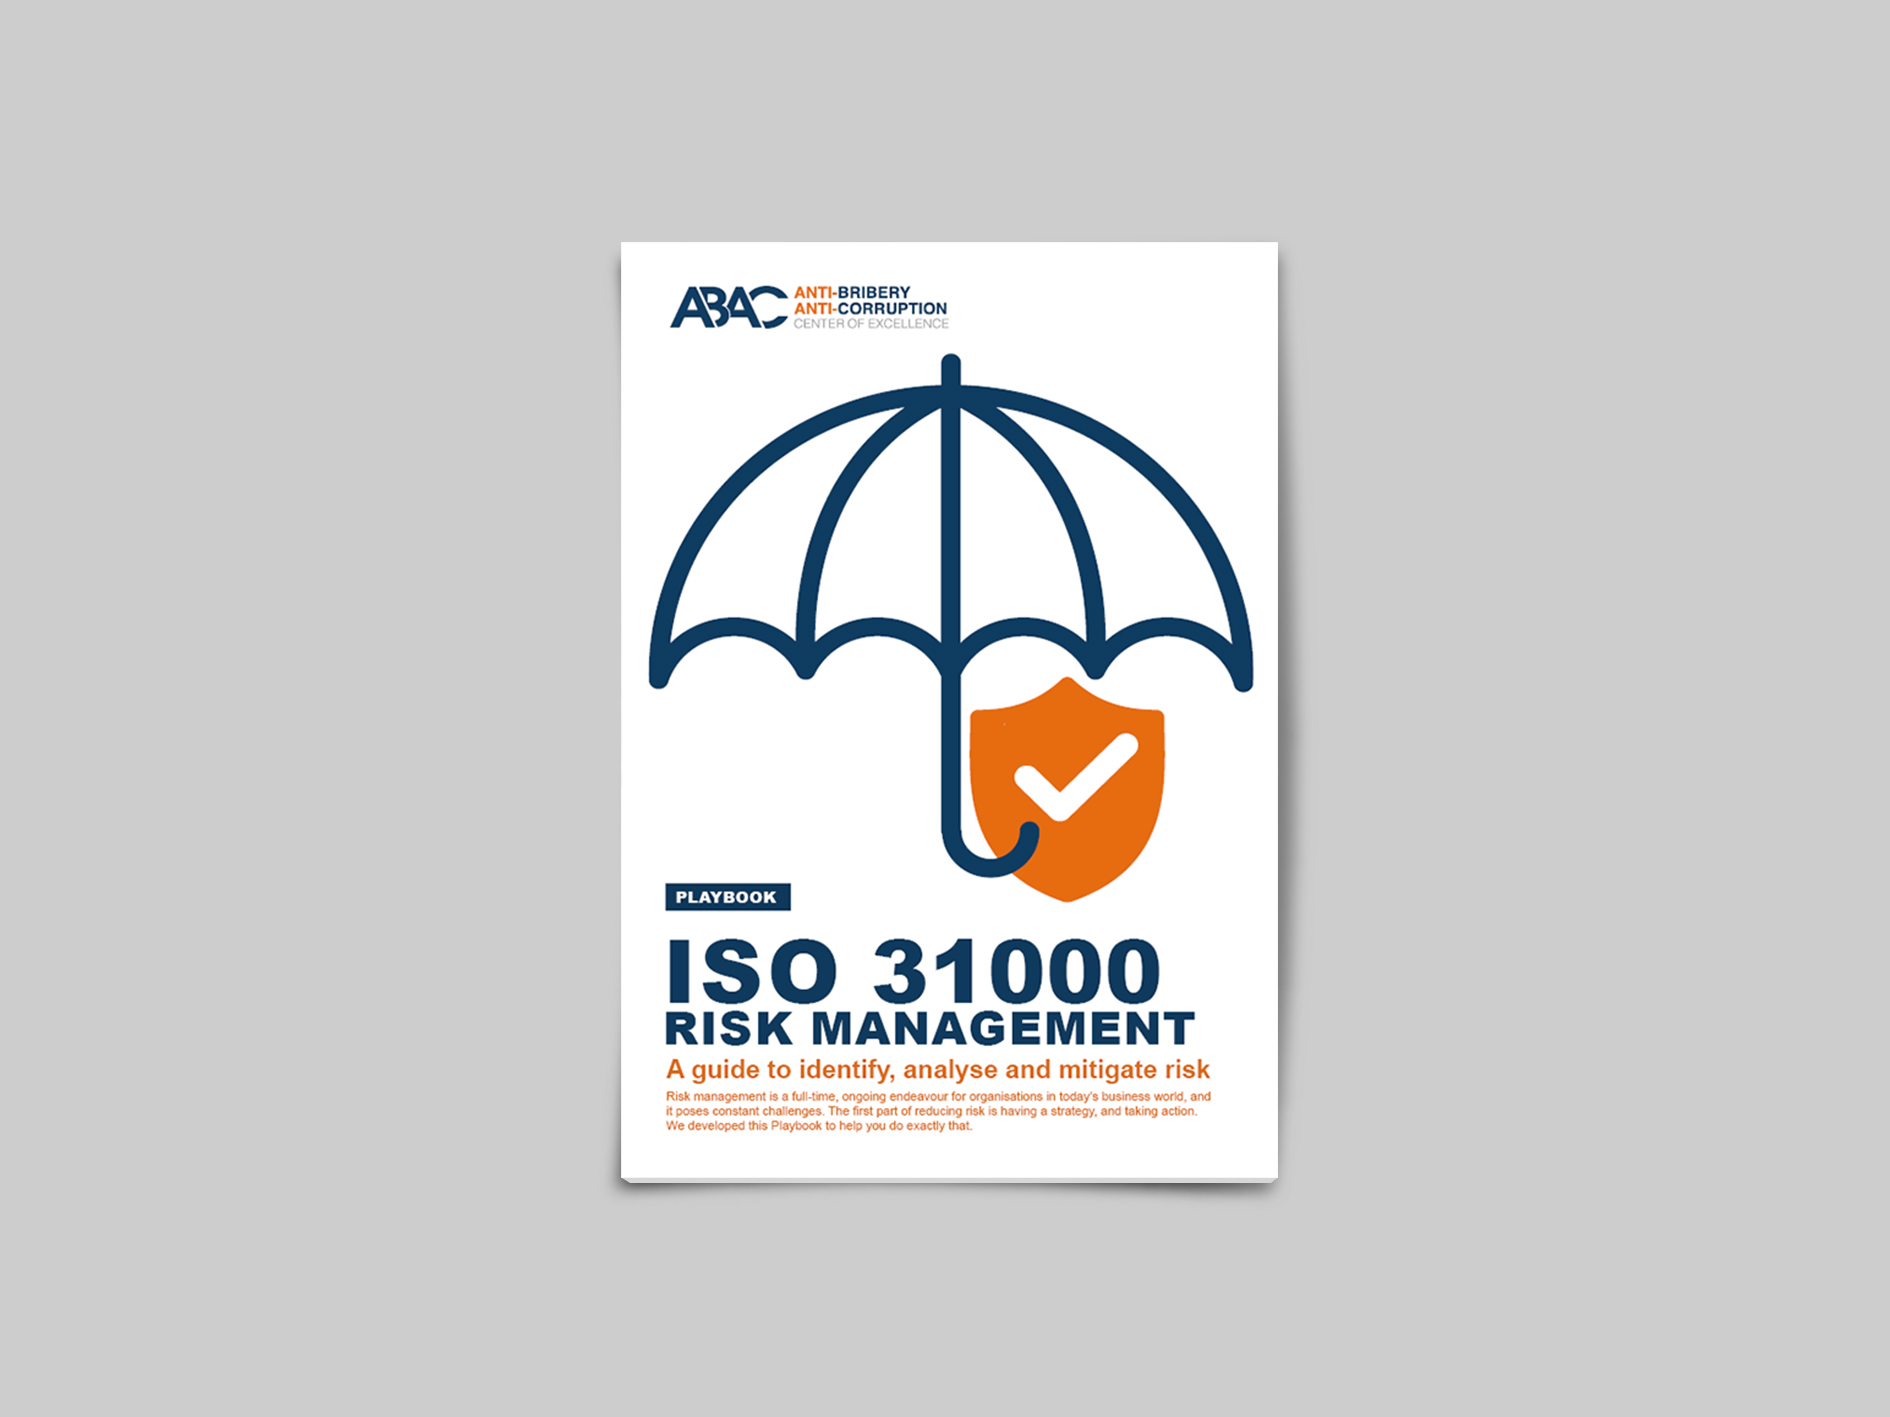 ISO 31000 Risk Management - A guide to identify, analyse and mitigate risk